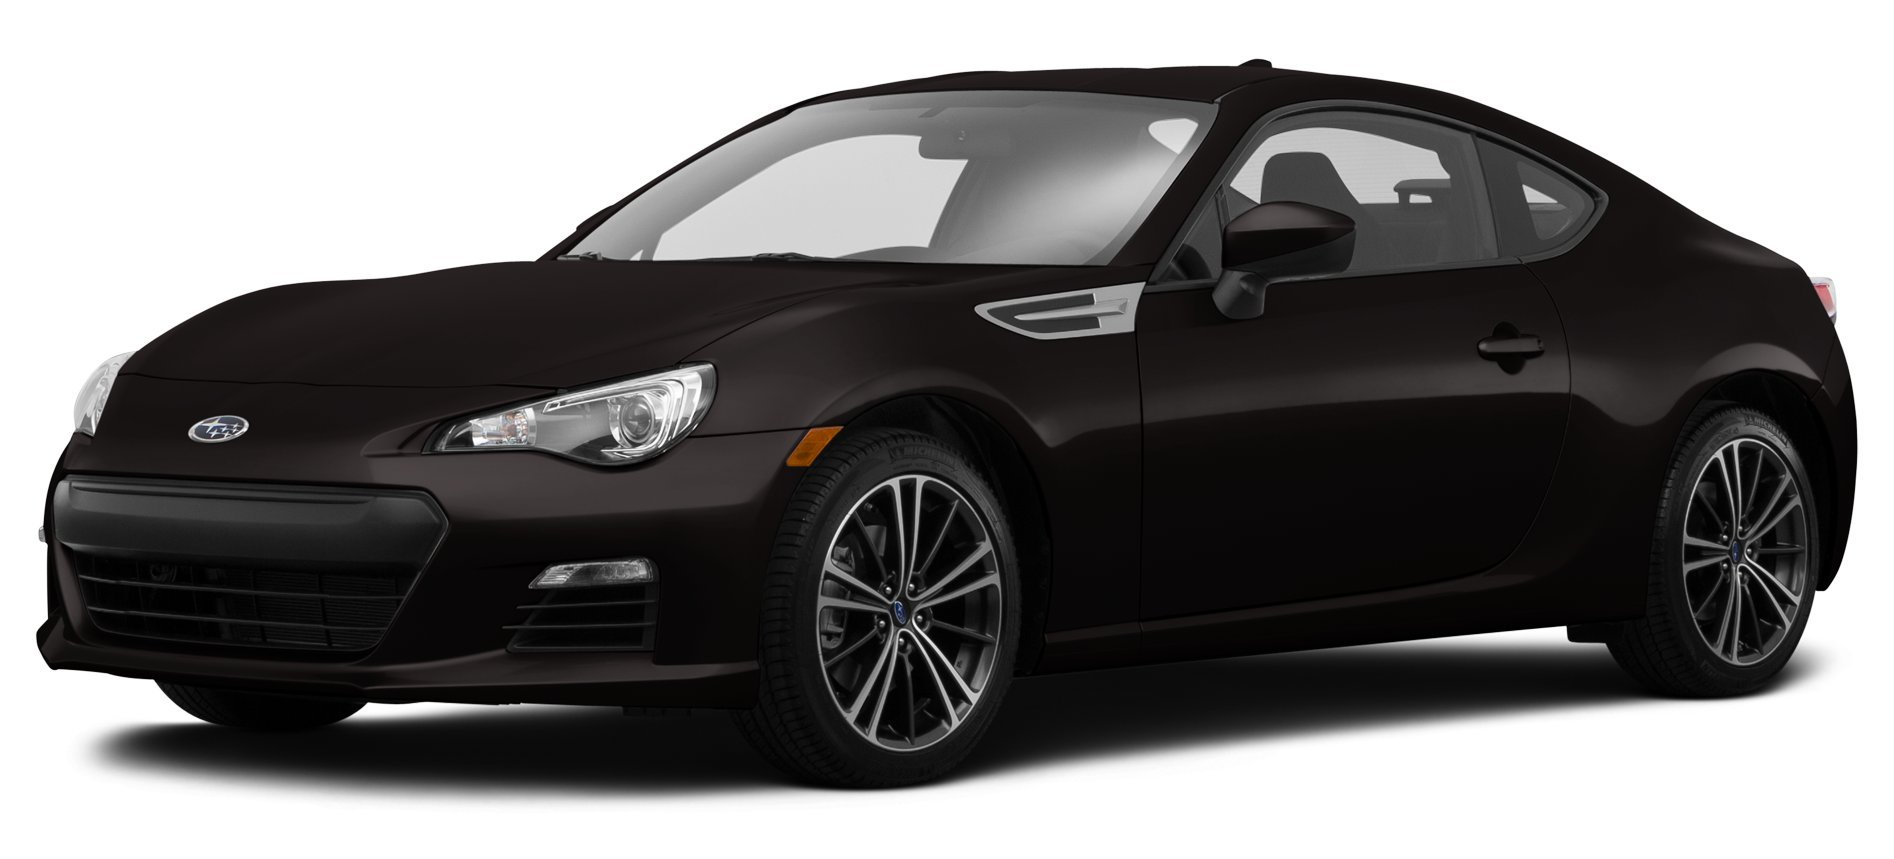 ... 2015 Subaru BRZ Premium, 2-Door Coupe Manual Transmission ...